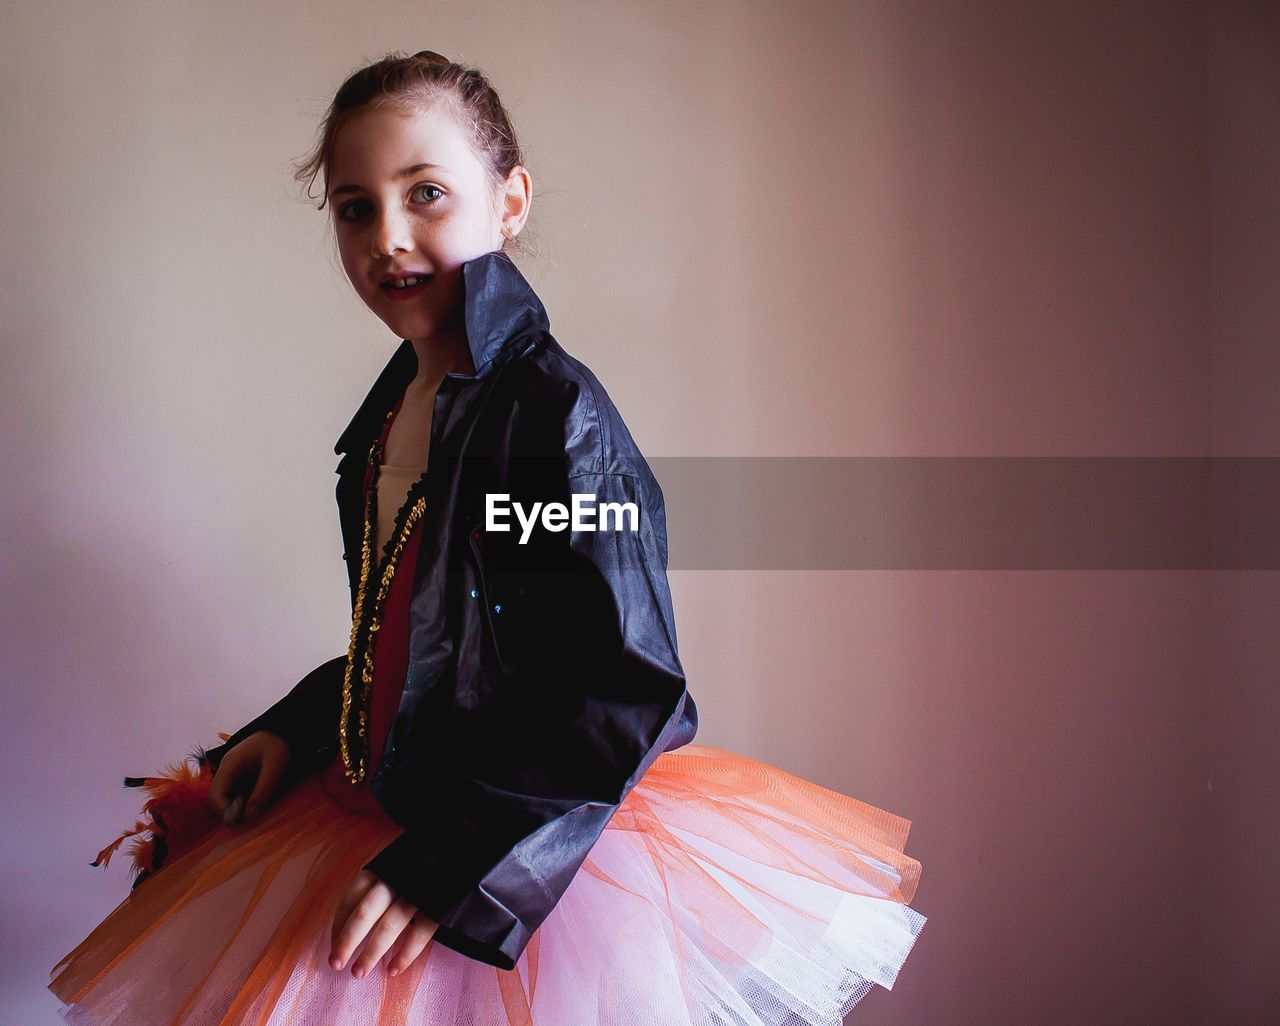 Side View Of Confident Girl Wearing Tutu And Jacket Against Wall